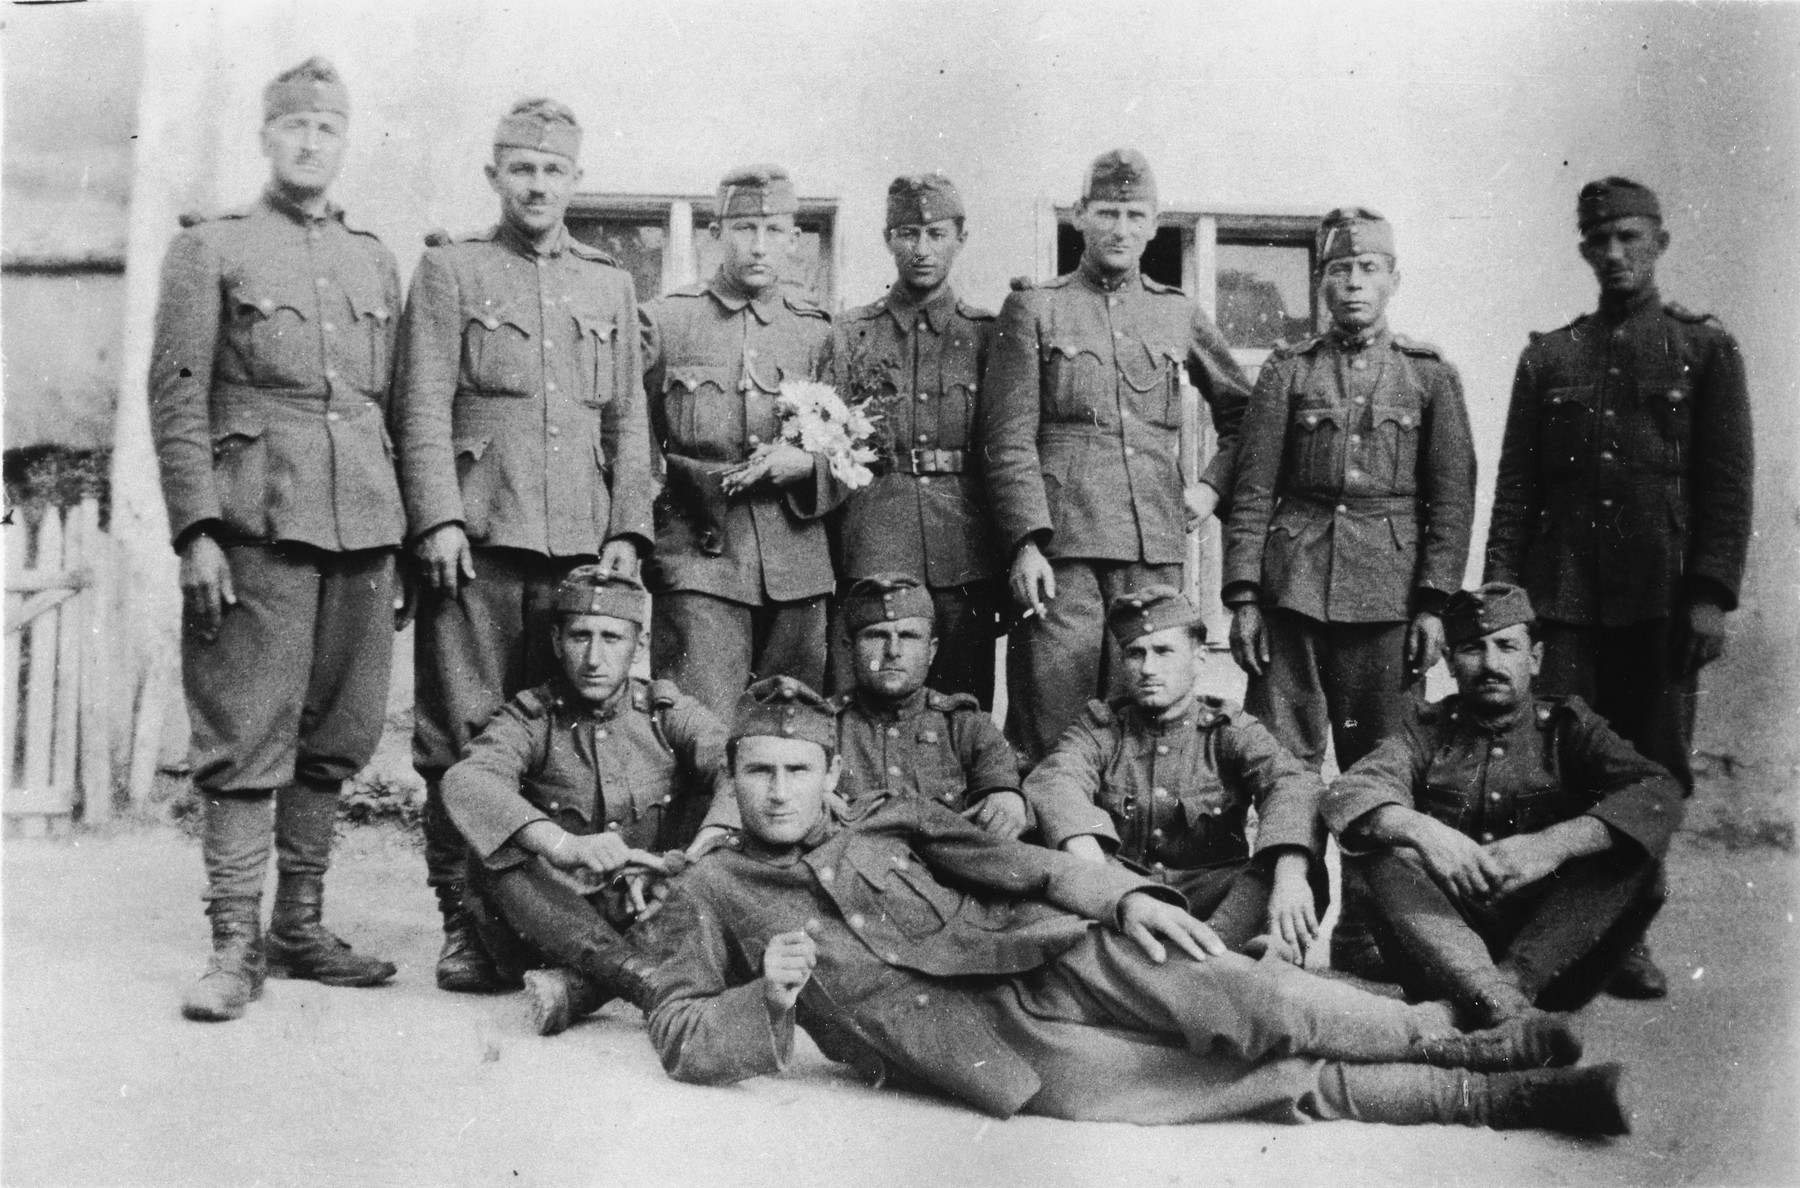 Group portrait of former Jewish soldiers now conscripted into a Hungarian forced labor battalion.  Jeno Lebowiz is standing in the center.